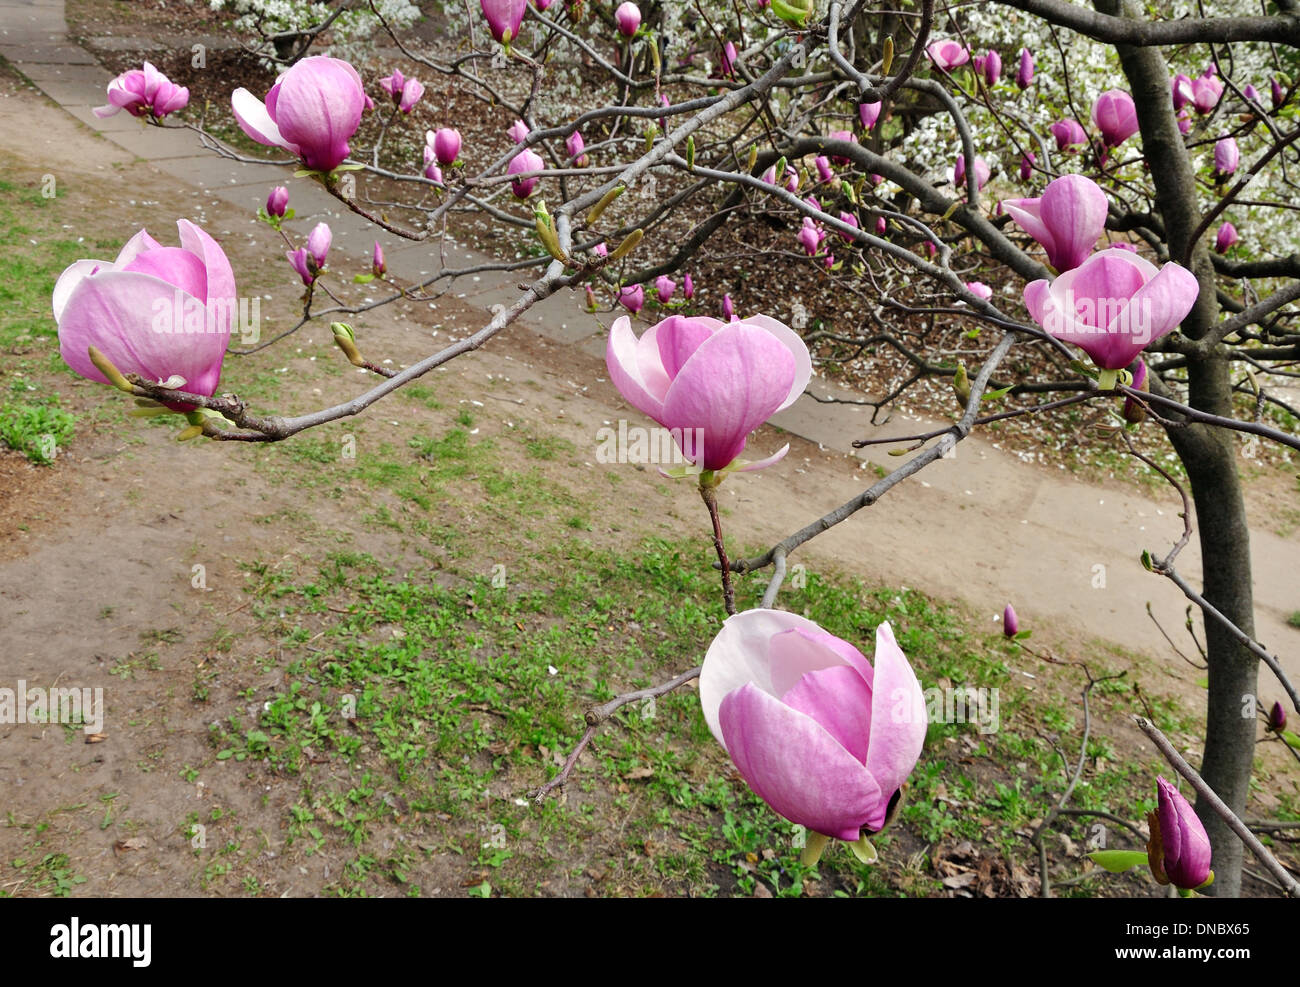 Magnolia Tree With Big Pink Flowers On The Branches Stock Photo